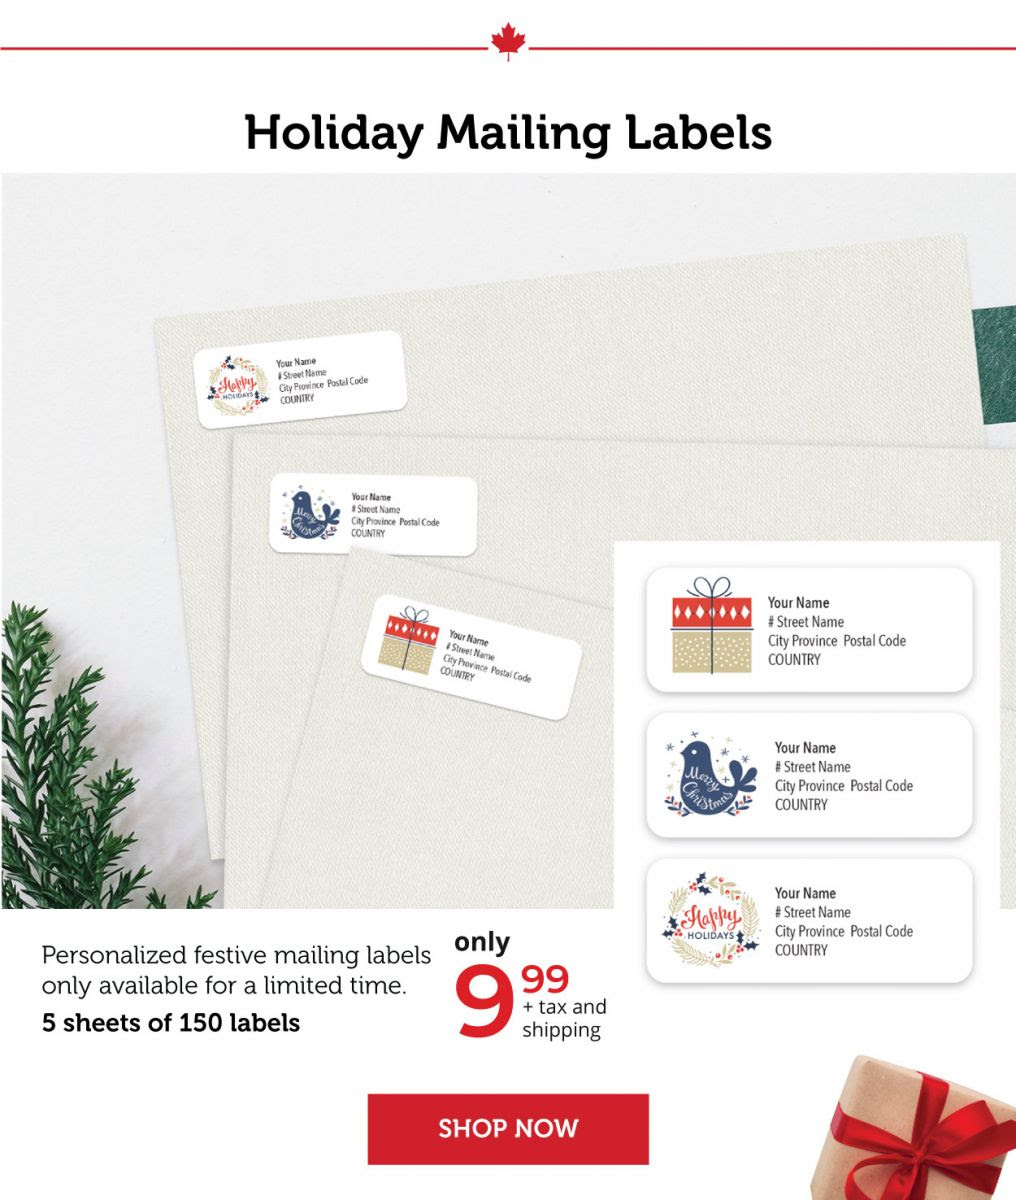 Holiday Mailing Labels